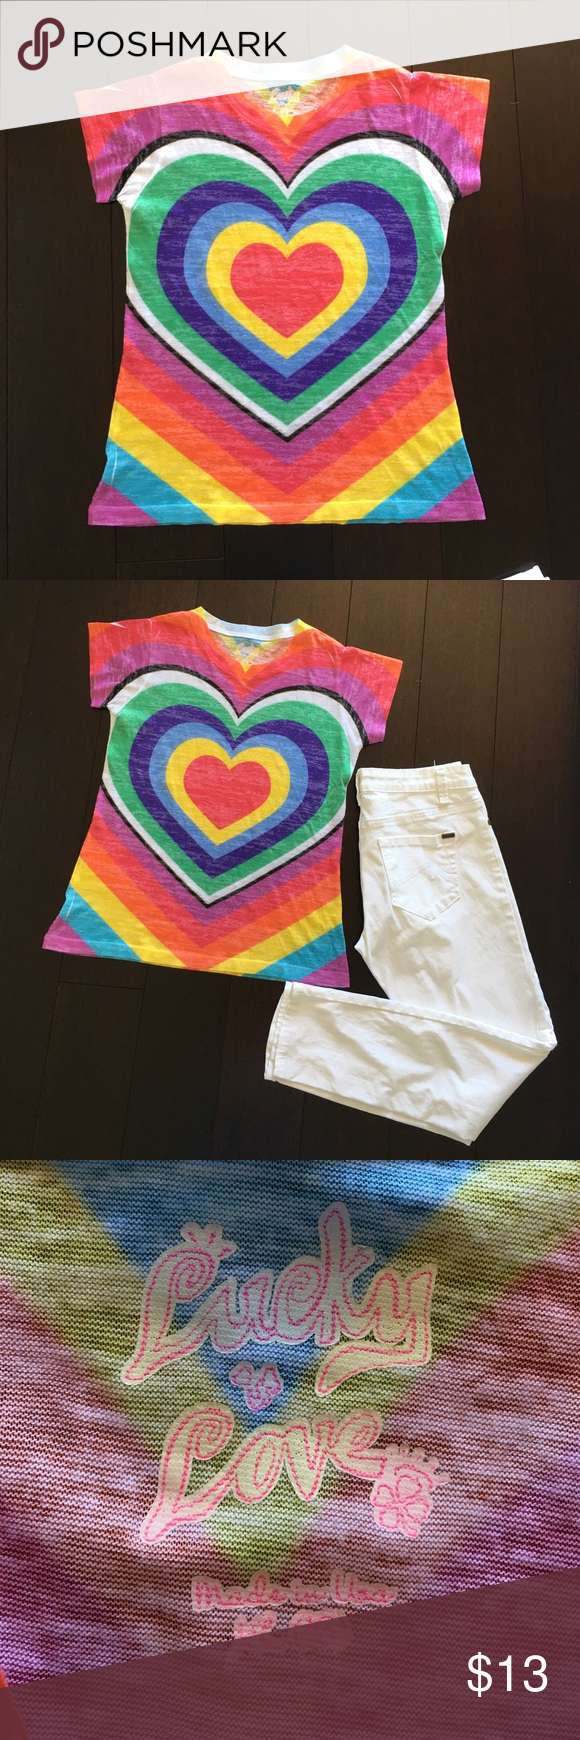 Lucky Love Tee XL (16) Vibrant colors, front and back. Made in the USA. Fabric appears to be cotton. The fabric does have some stretch. I feel that this shirt would fit an adult extra small also. Lucky Love Tops Tees - Short Sleeve